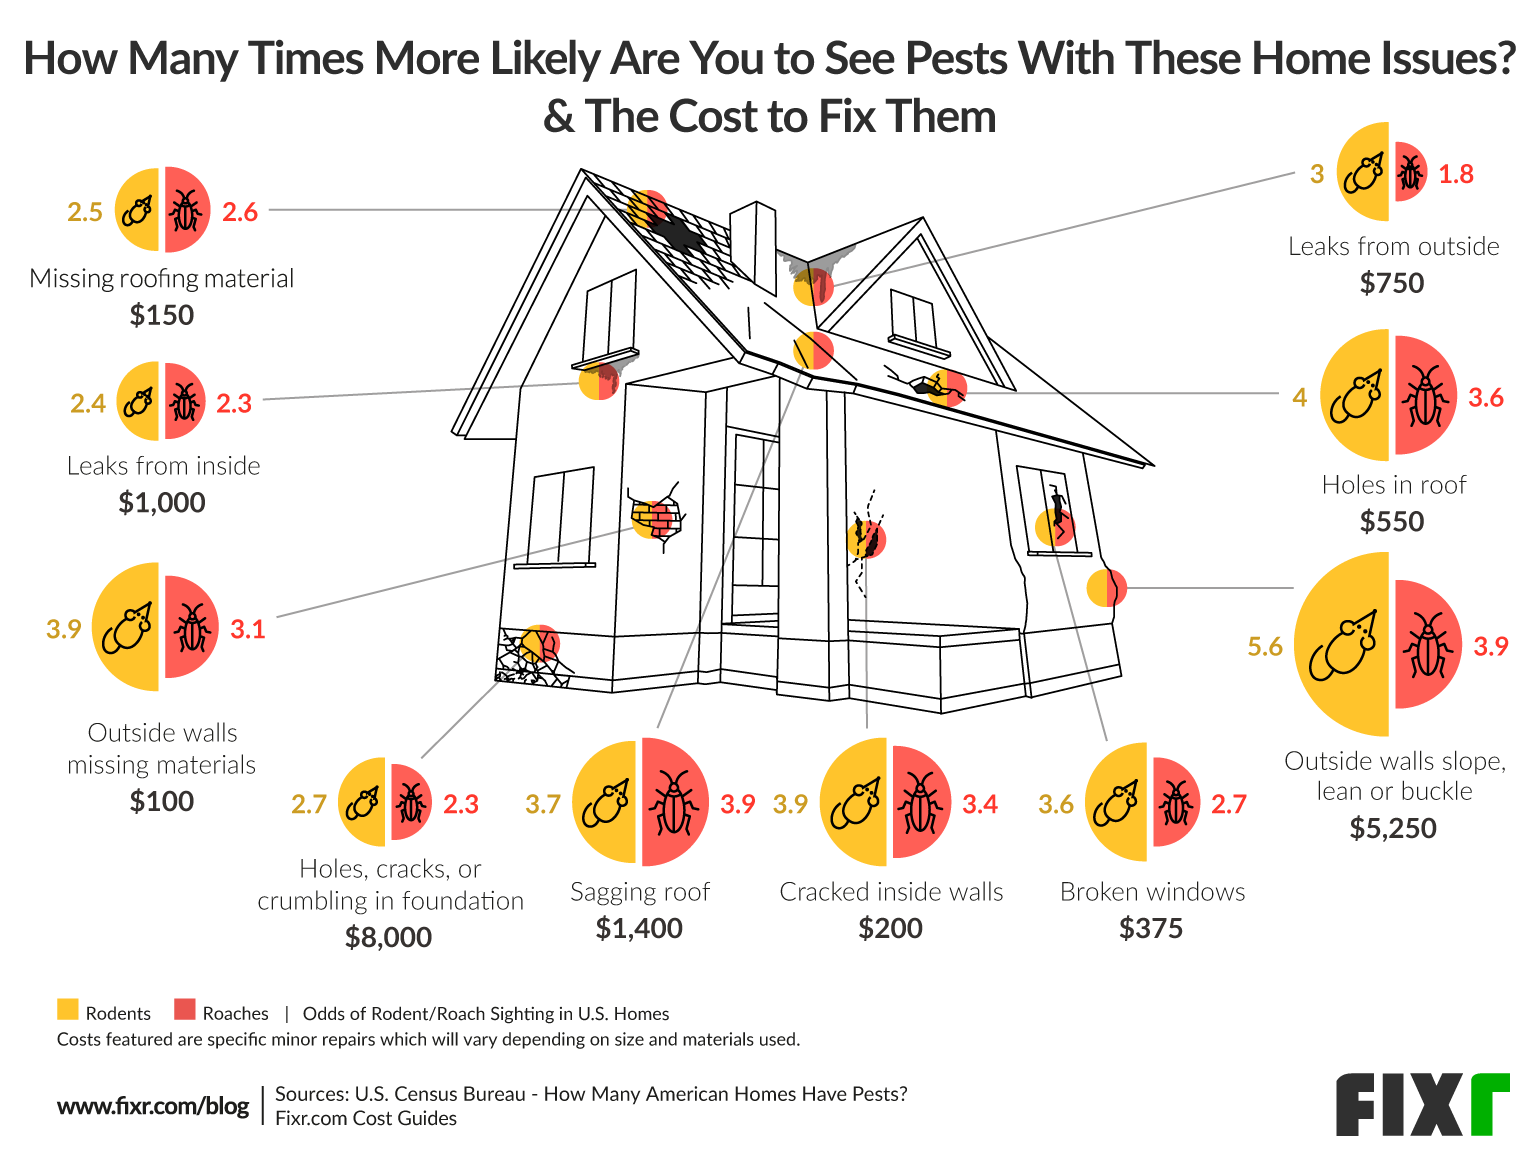 Cost of Home Repairs for Pest Prevention: Roaches & Rodents